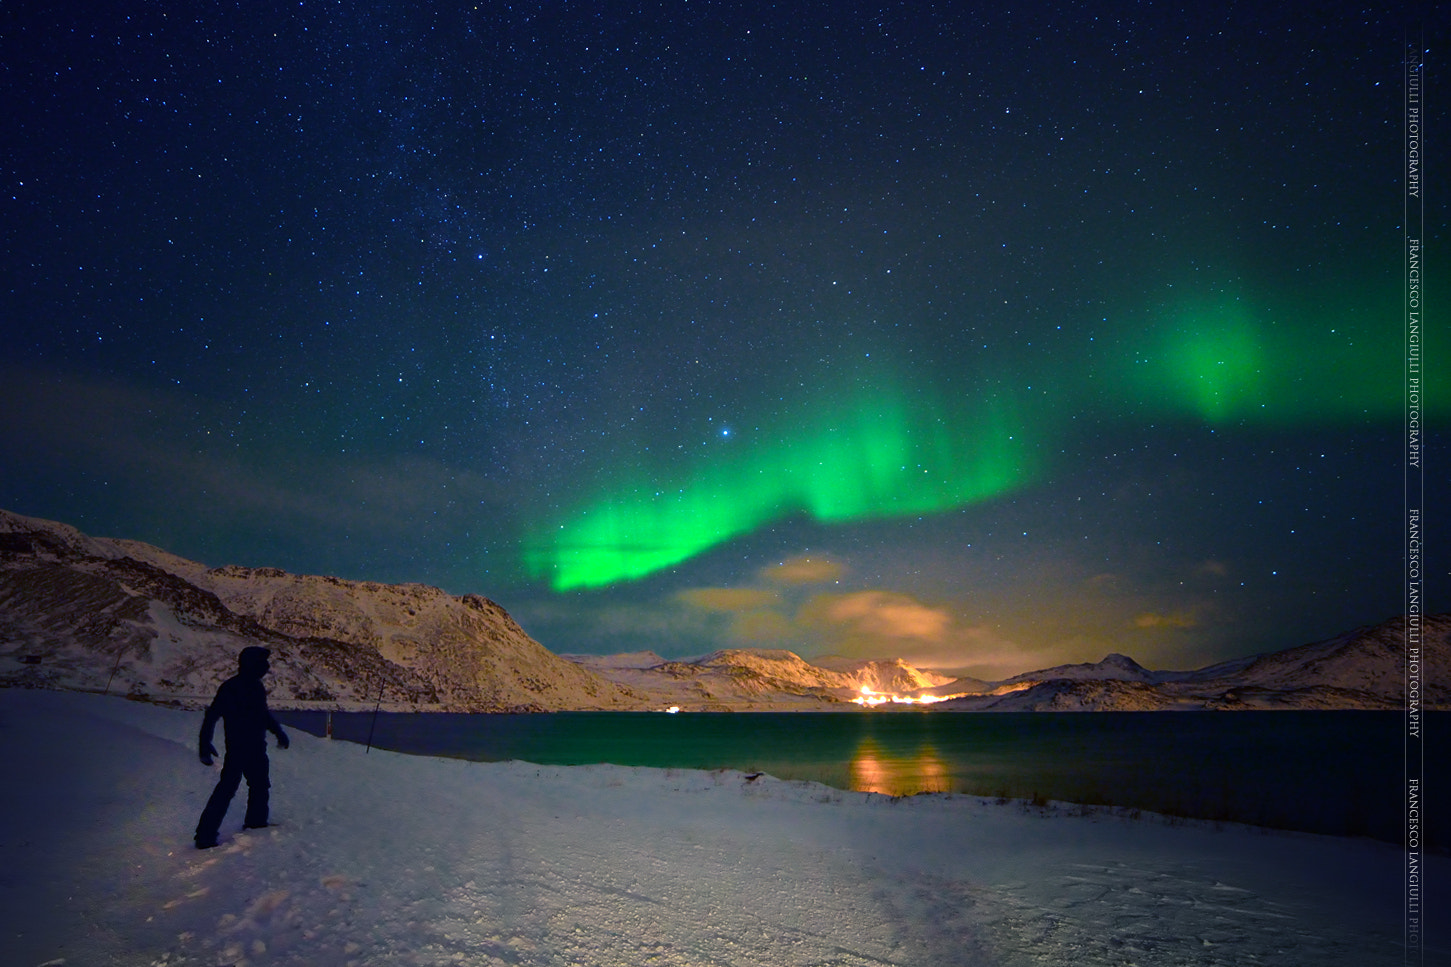 Photograph Self-timer with aurora by Francesco Langiulli on 500px